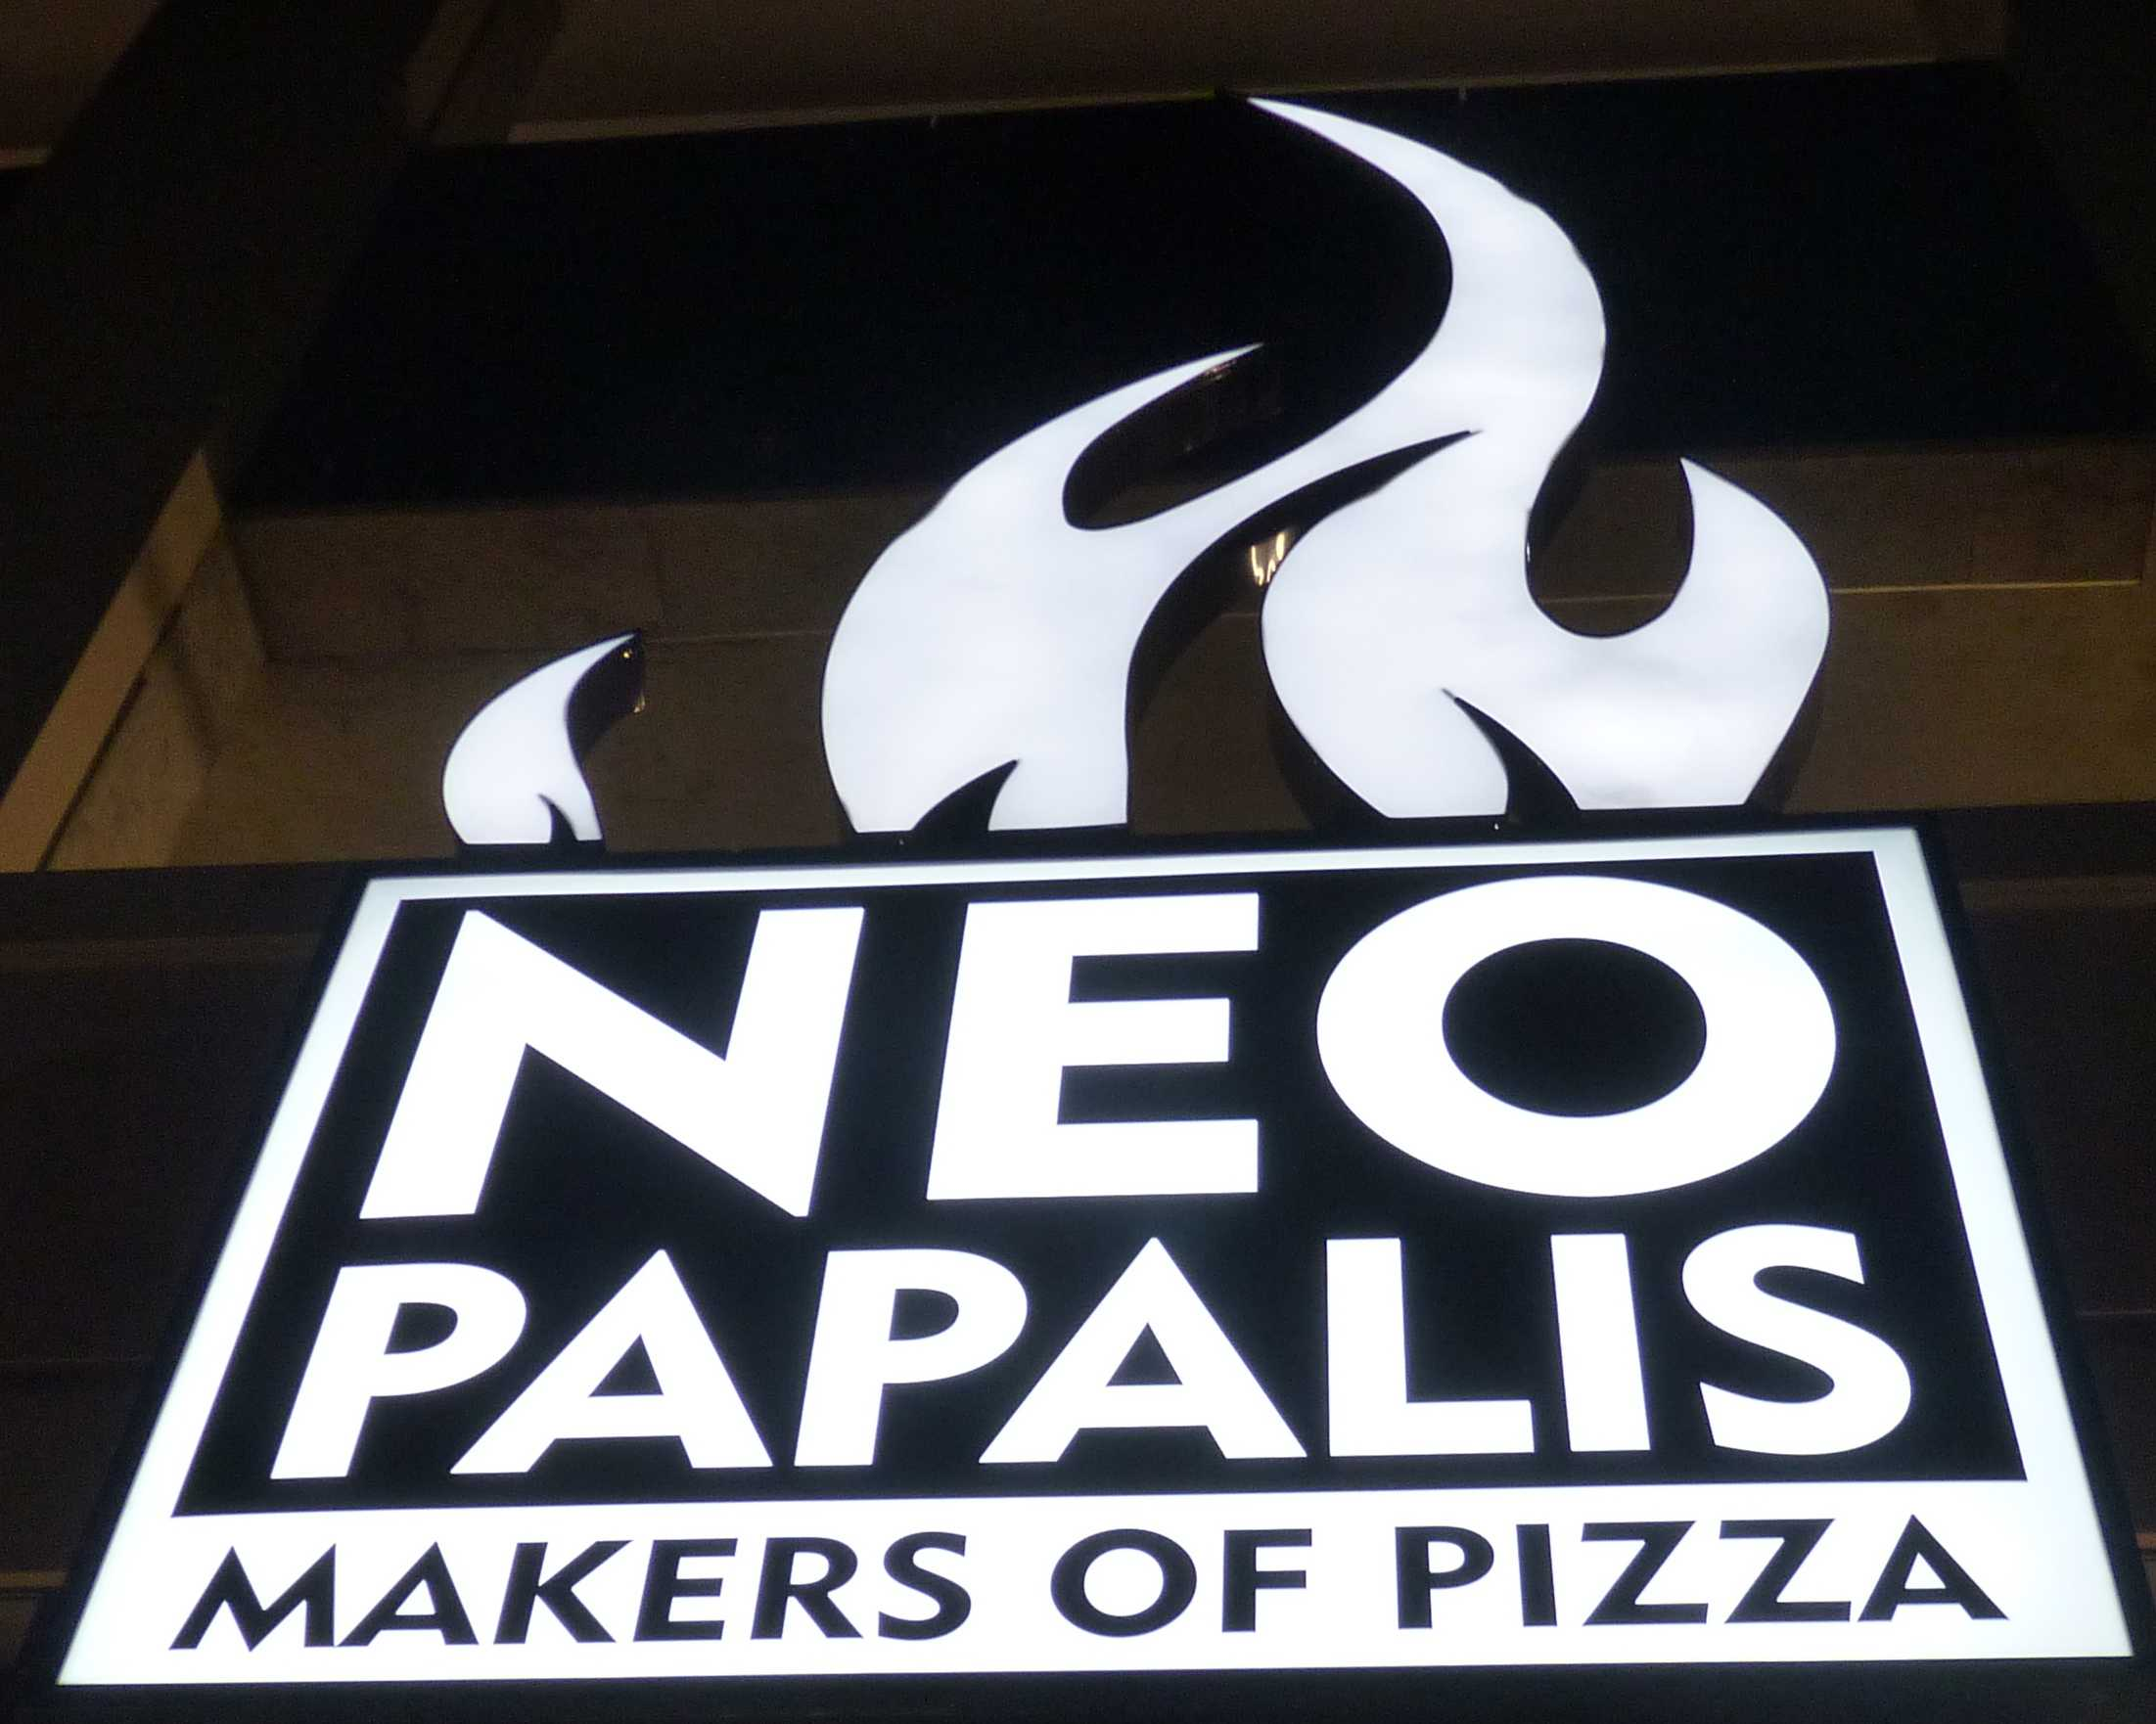 NeoPapalis sign outside of the NeoPapalis restaurant.